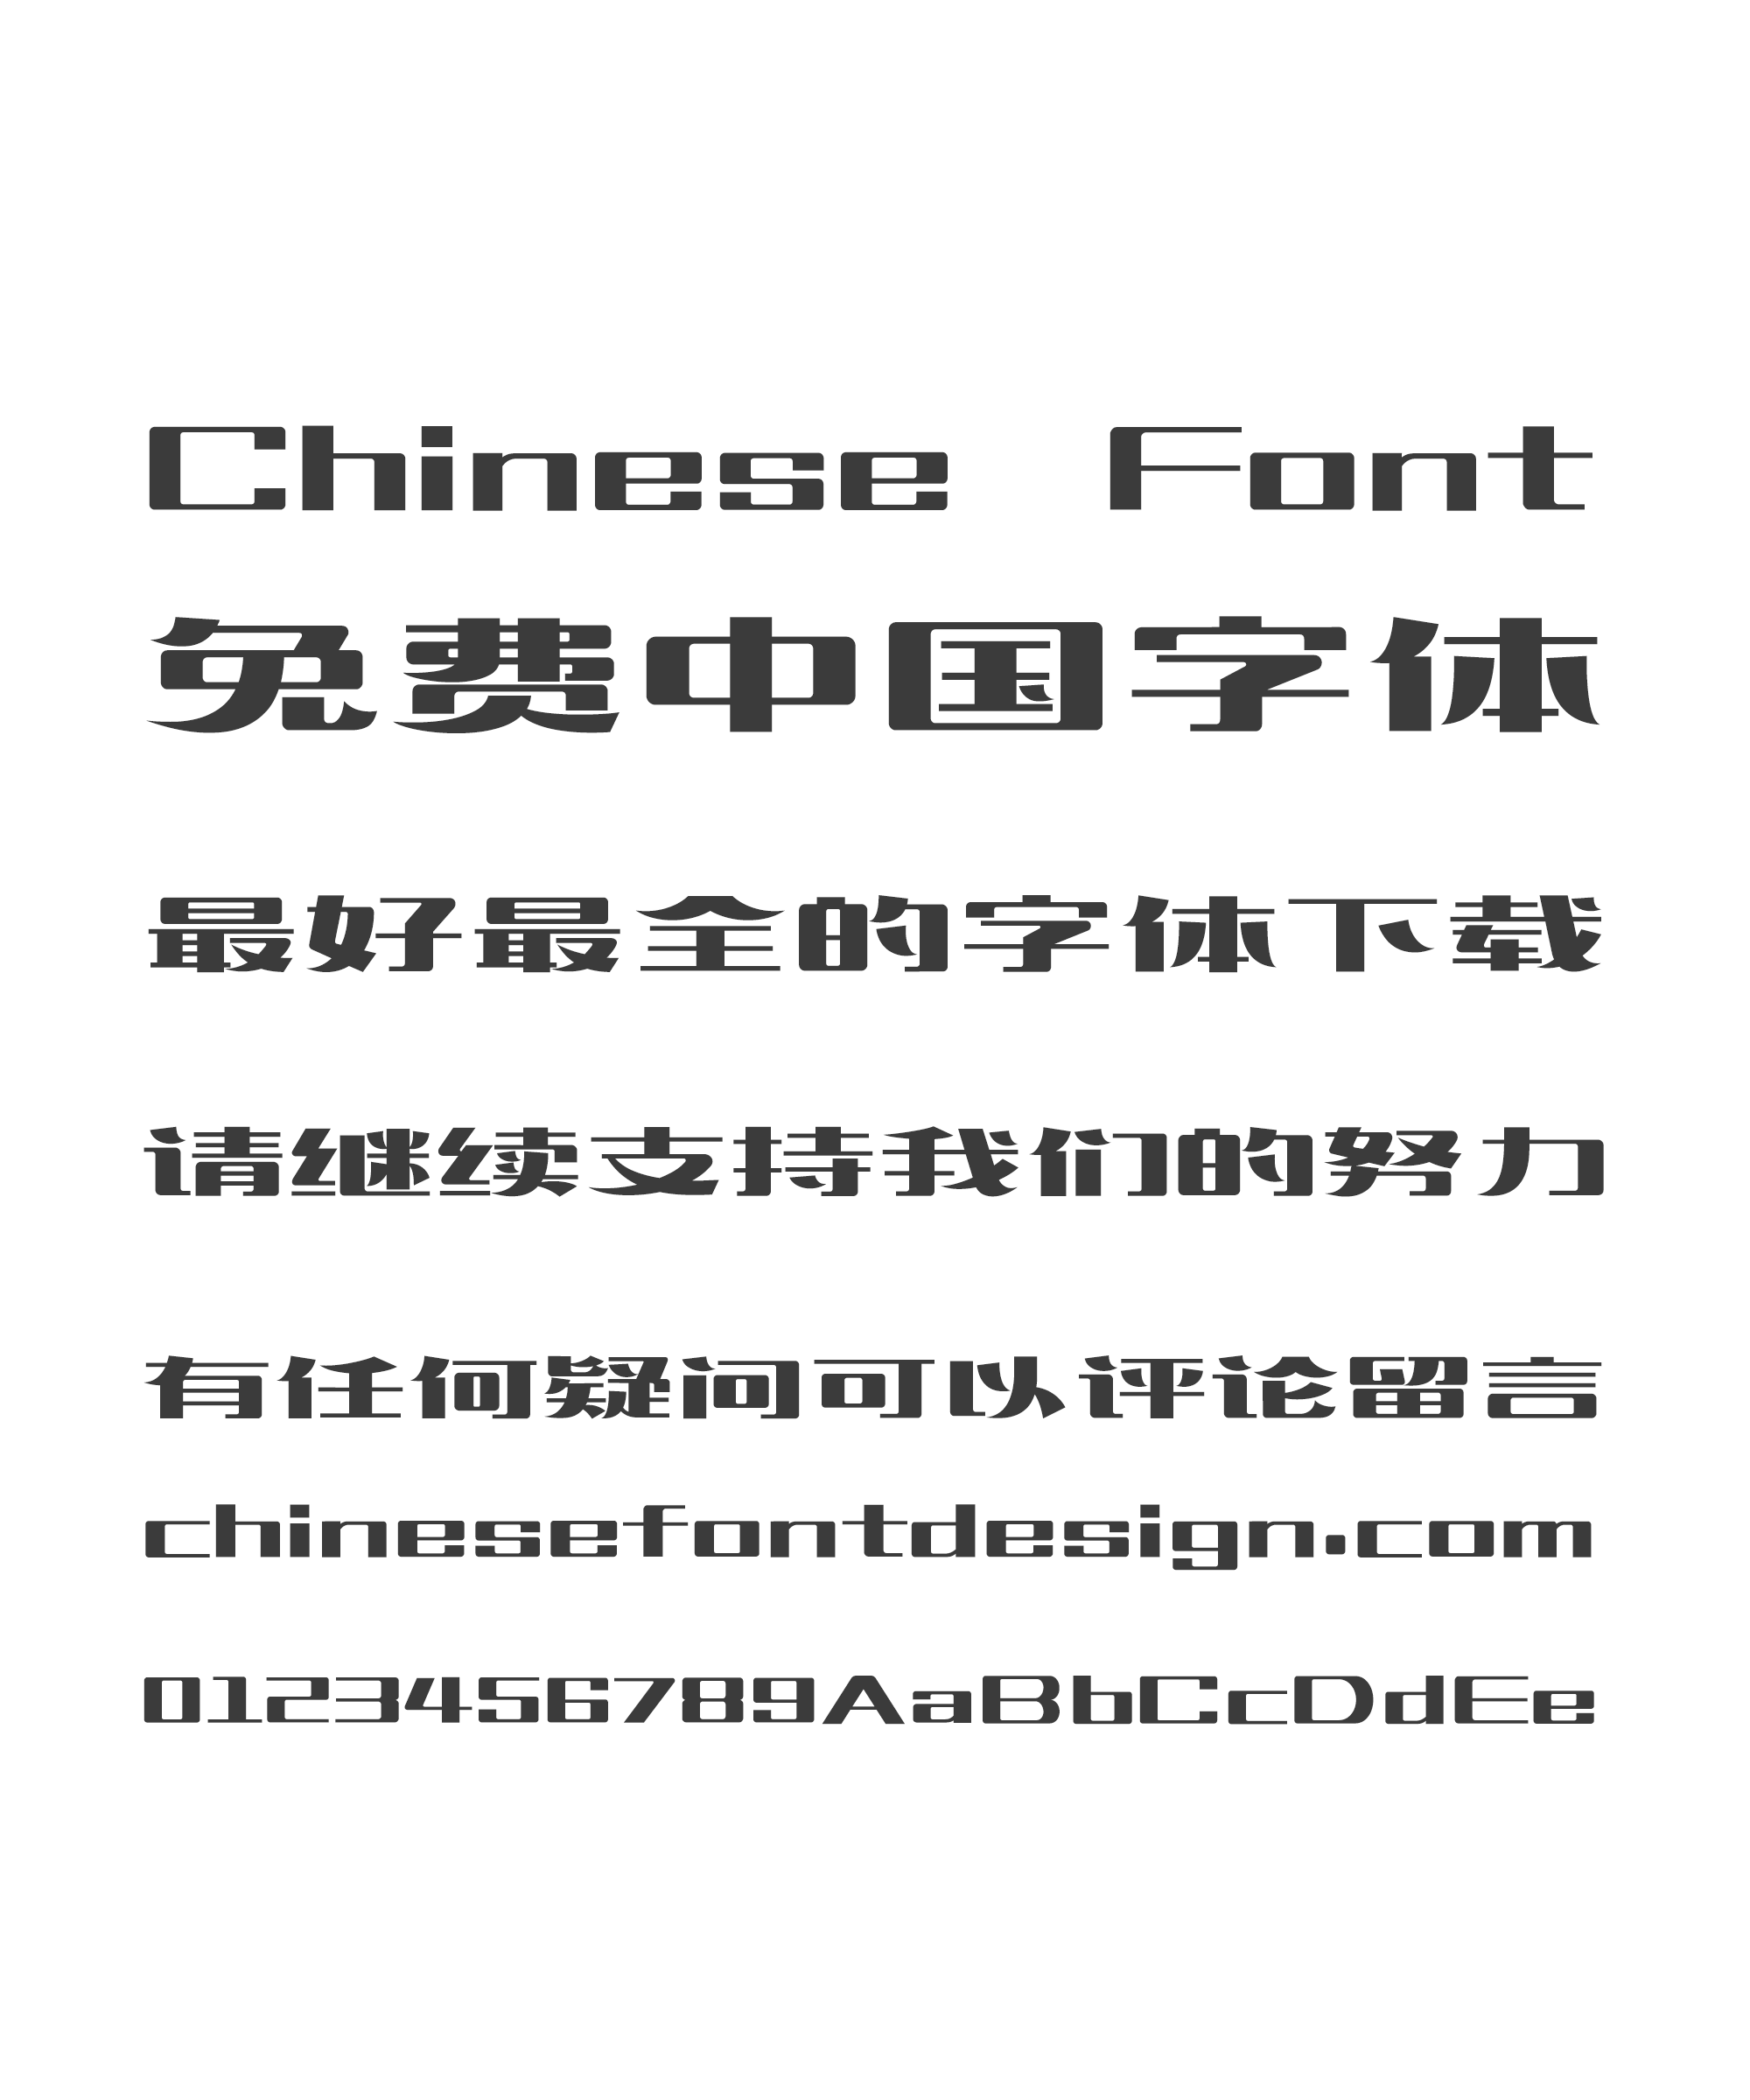 Zao Zi Gong Fang (Makefont) Brahma Song (Ming) Typeface Chinese Font-Simplified Chinese Fonts